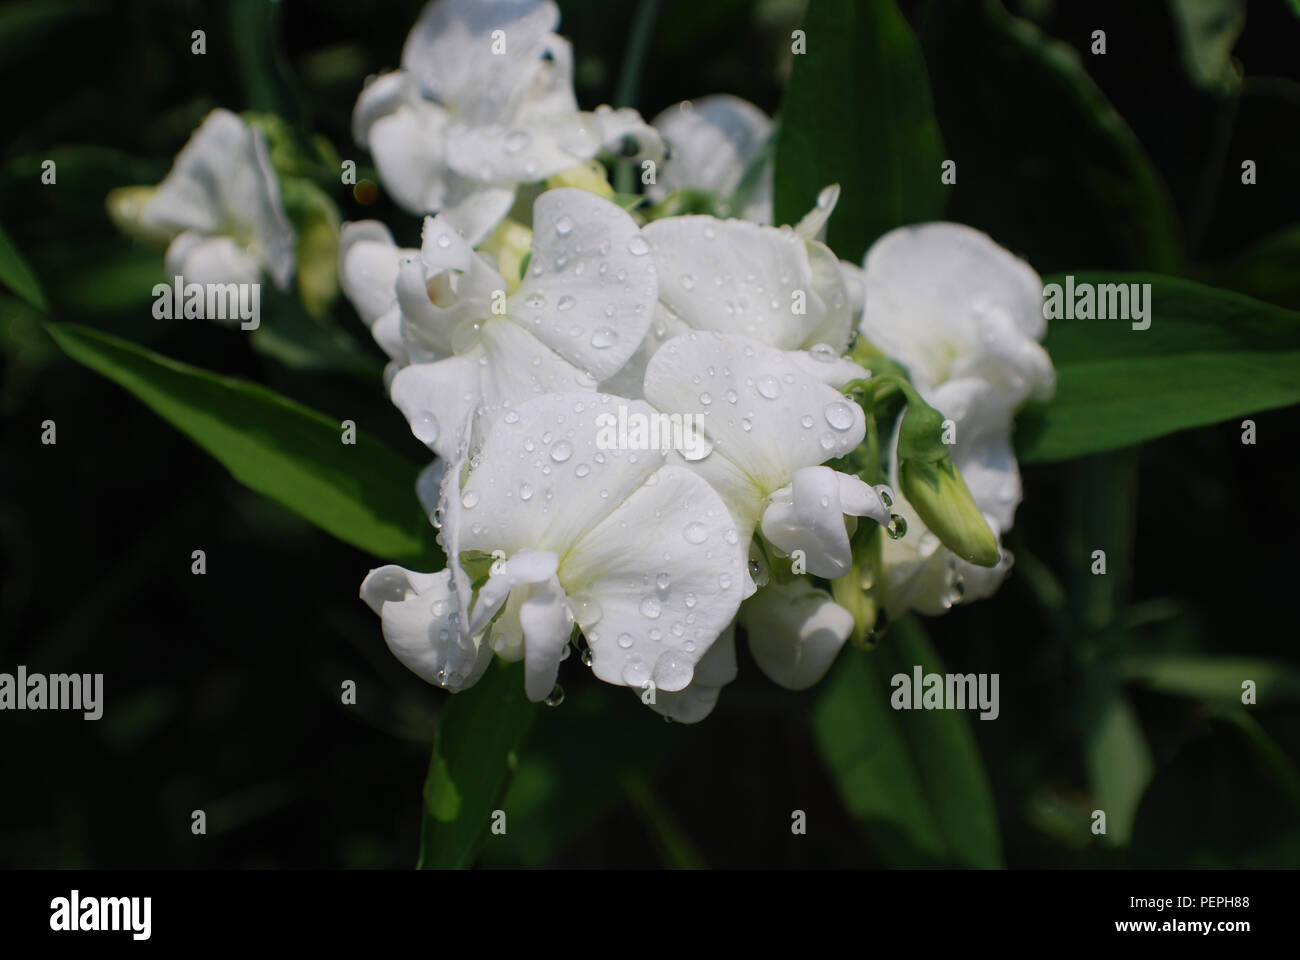 Flowering White Sweet Pea Flowers With Dew Drops On It Stock Photo